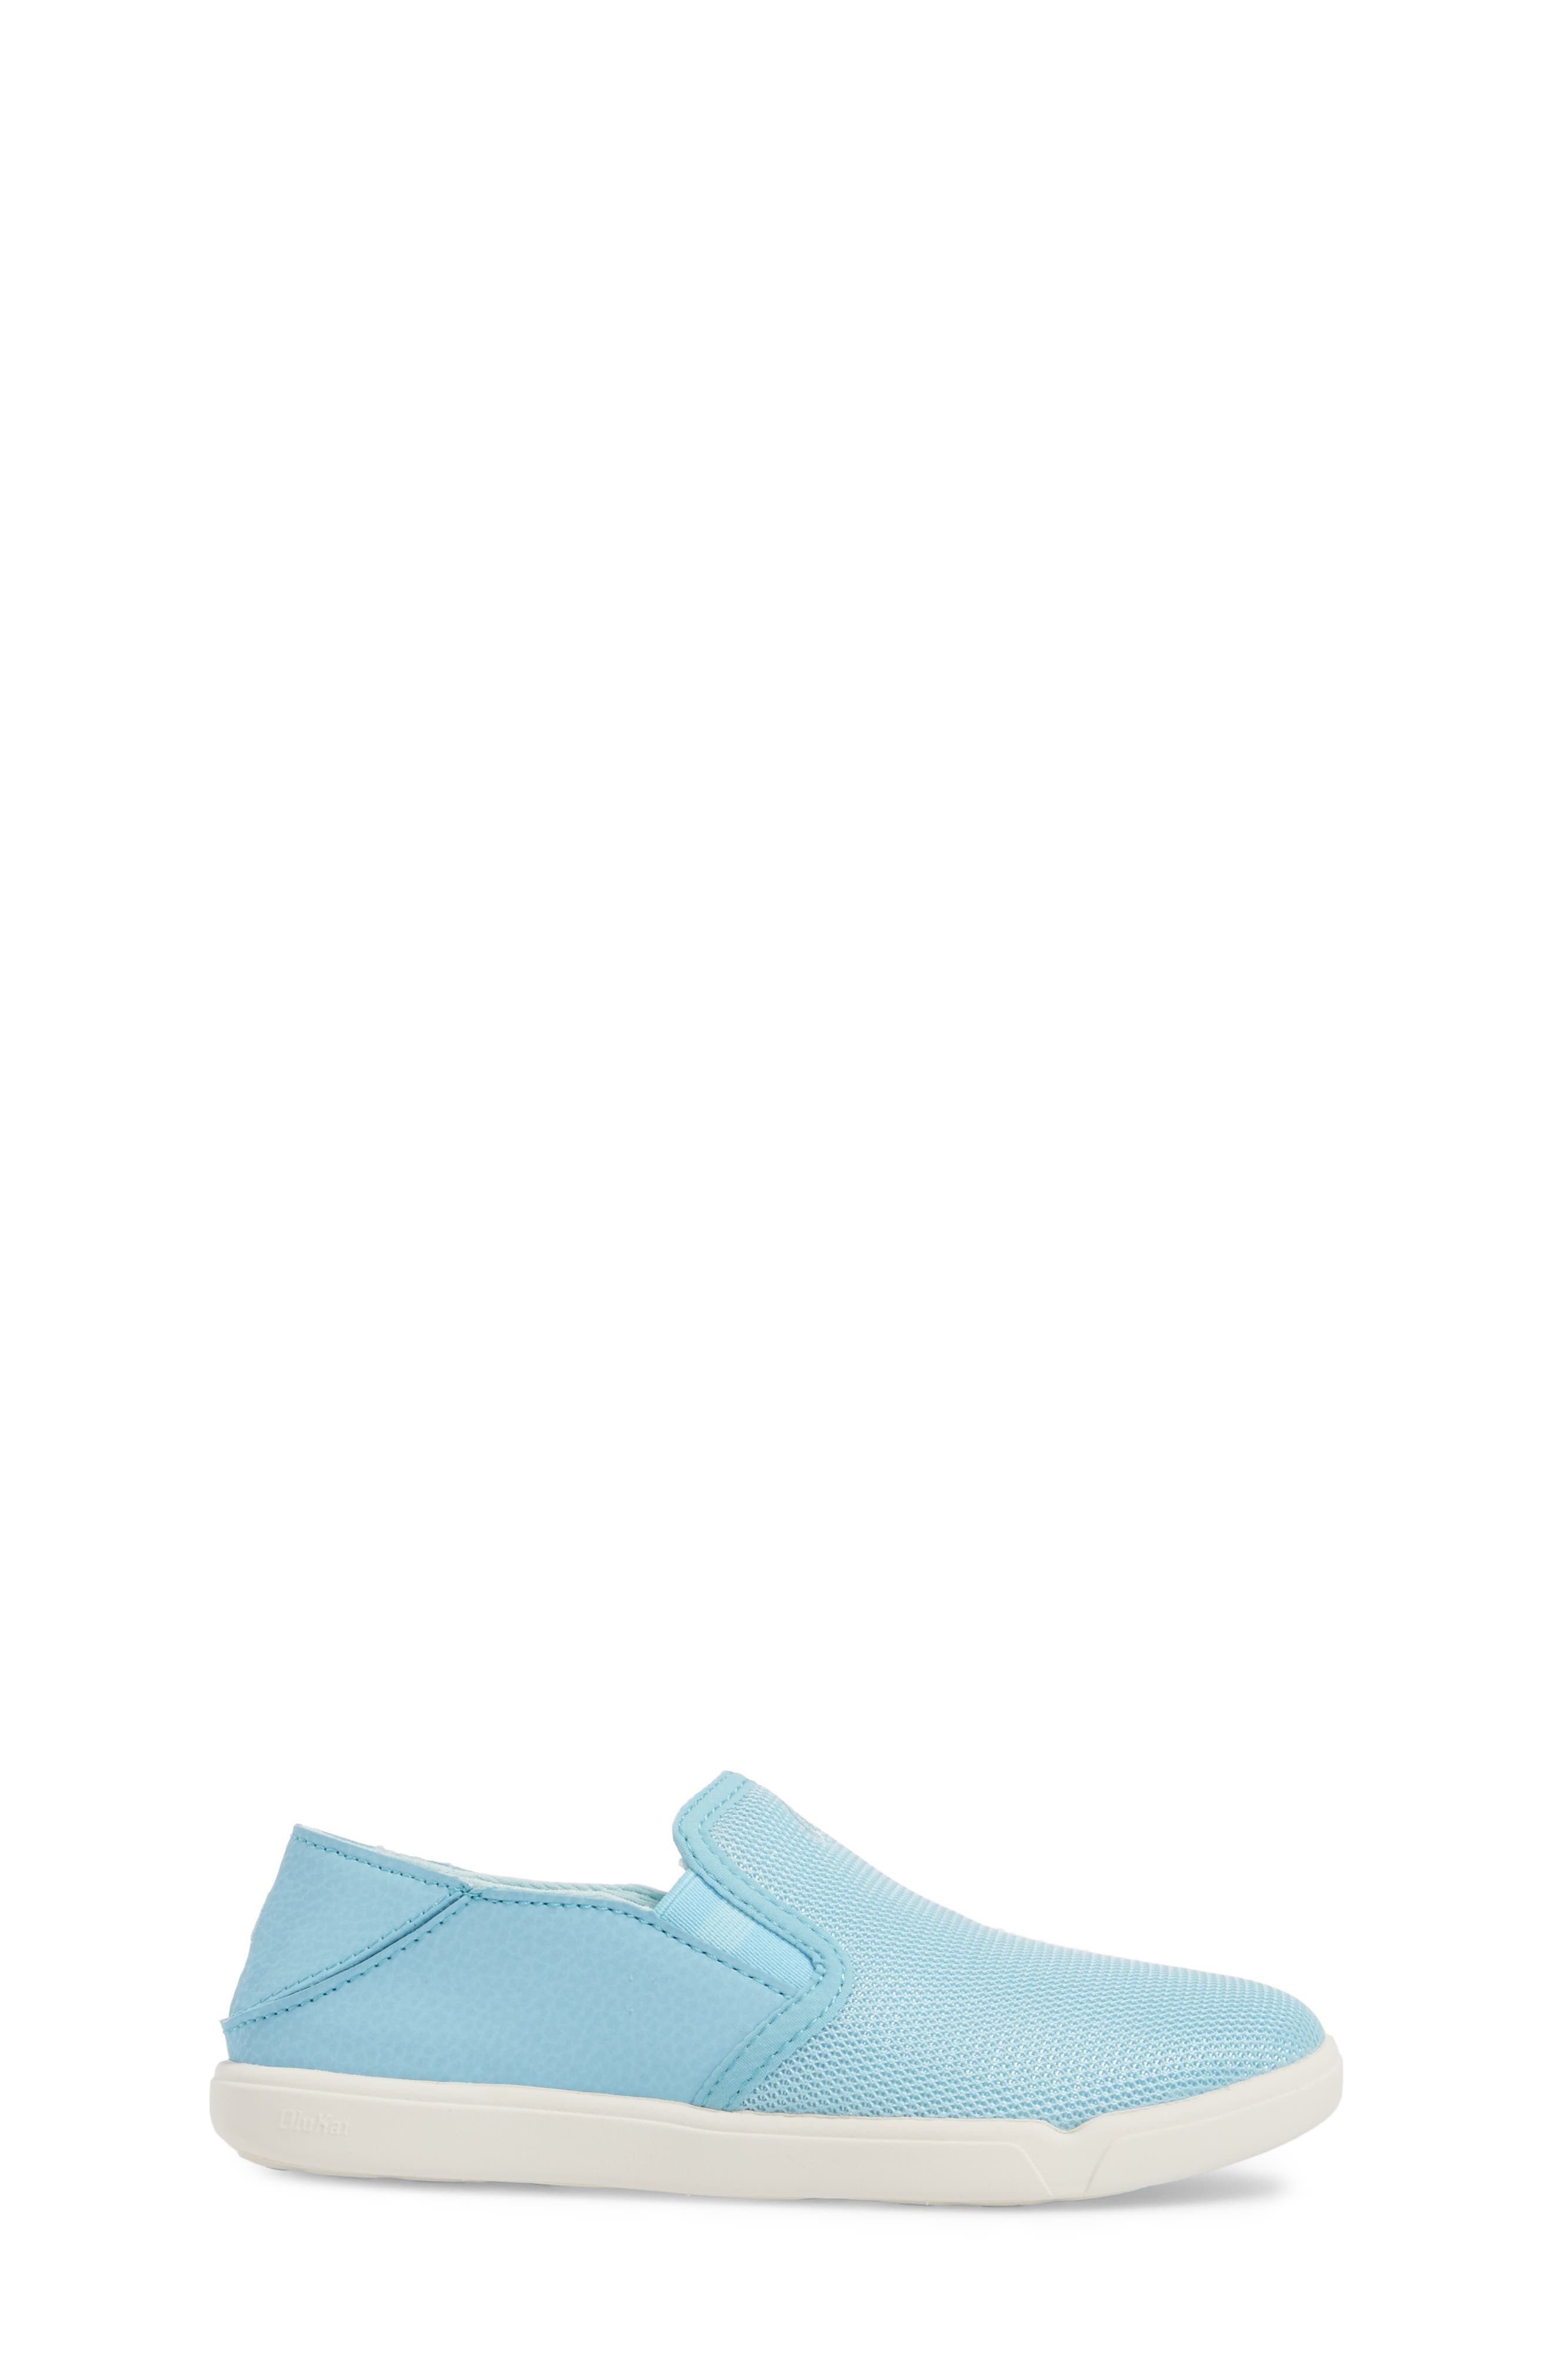 Pehuea Maka Collapsible Slip-On,                             Alternate thumbnail 4, color,                             Cotton Candy/ Clearwater